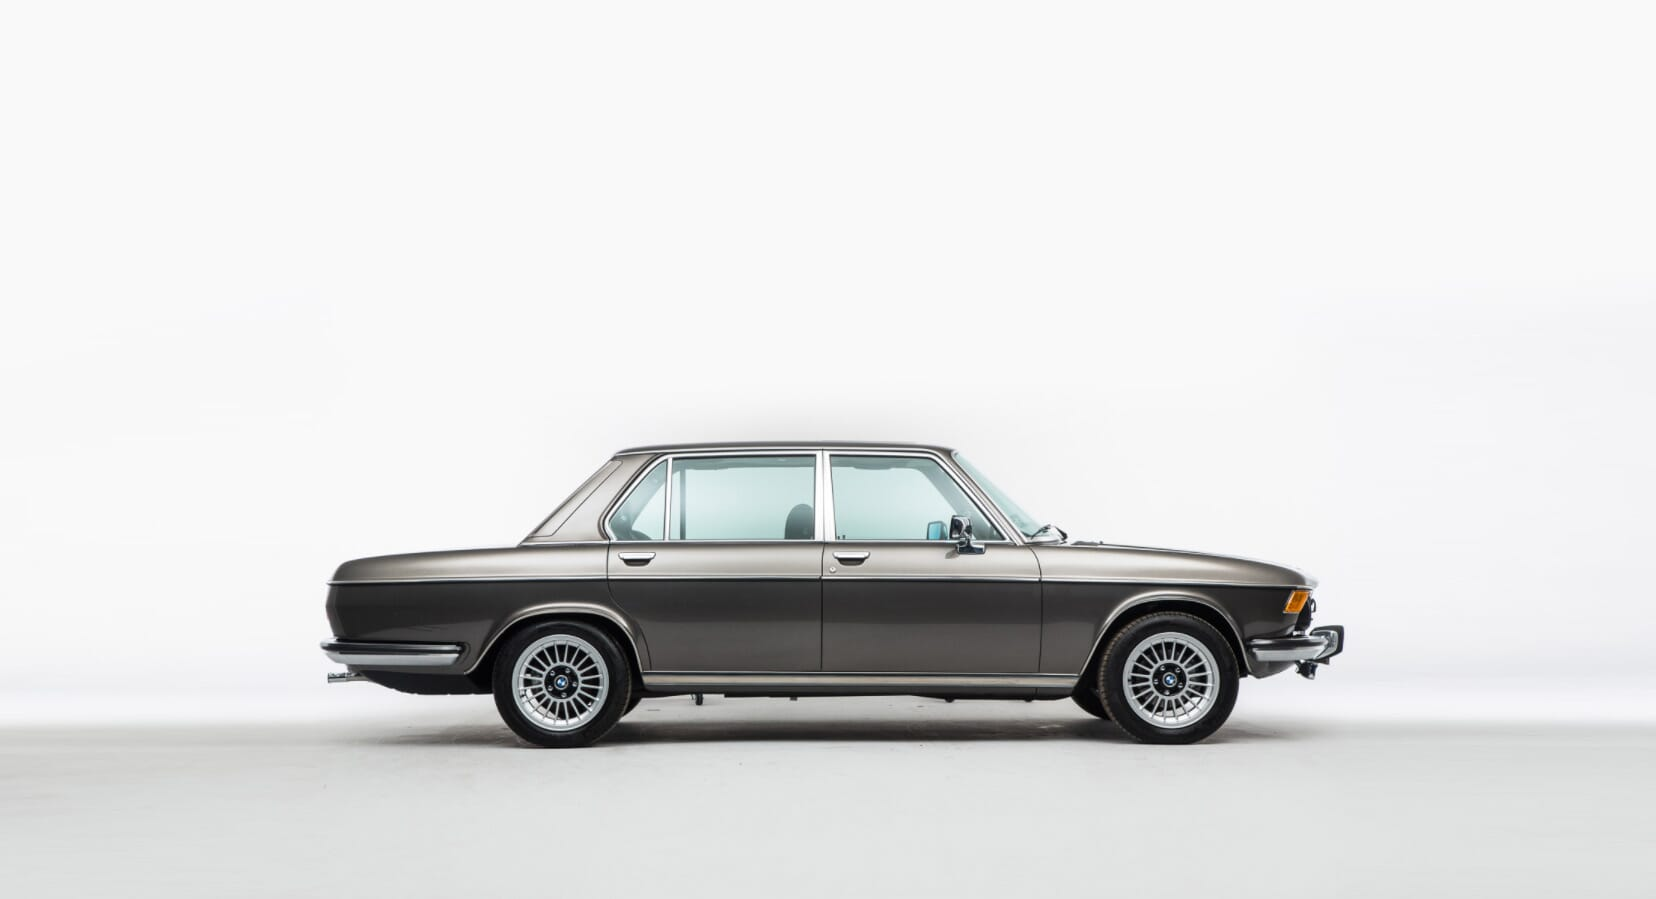 Is This The World's Finest BMW E3 3.3LIA?